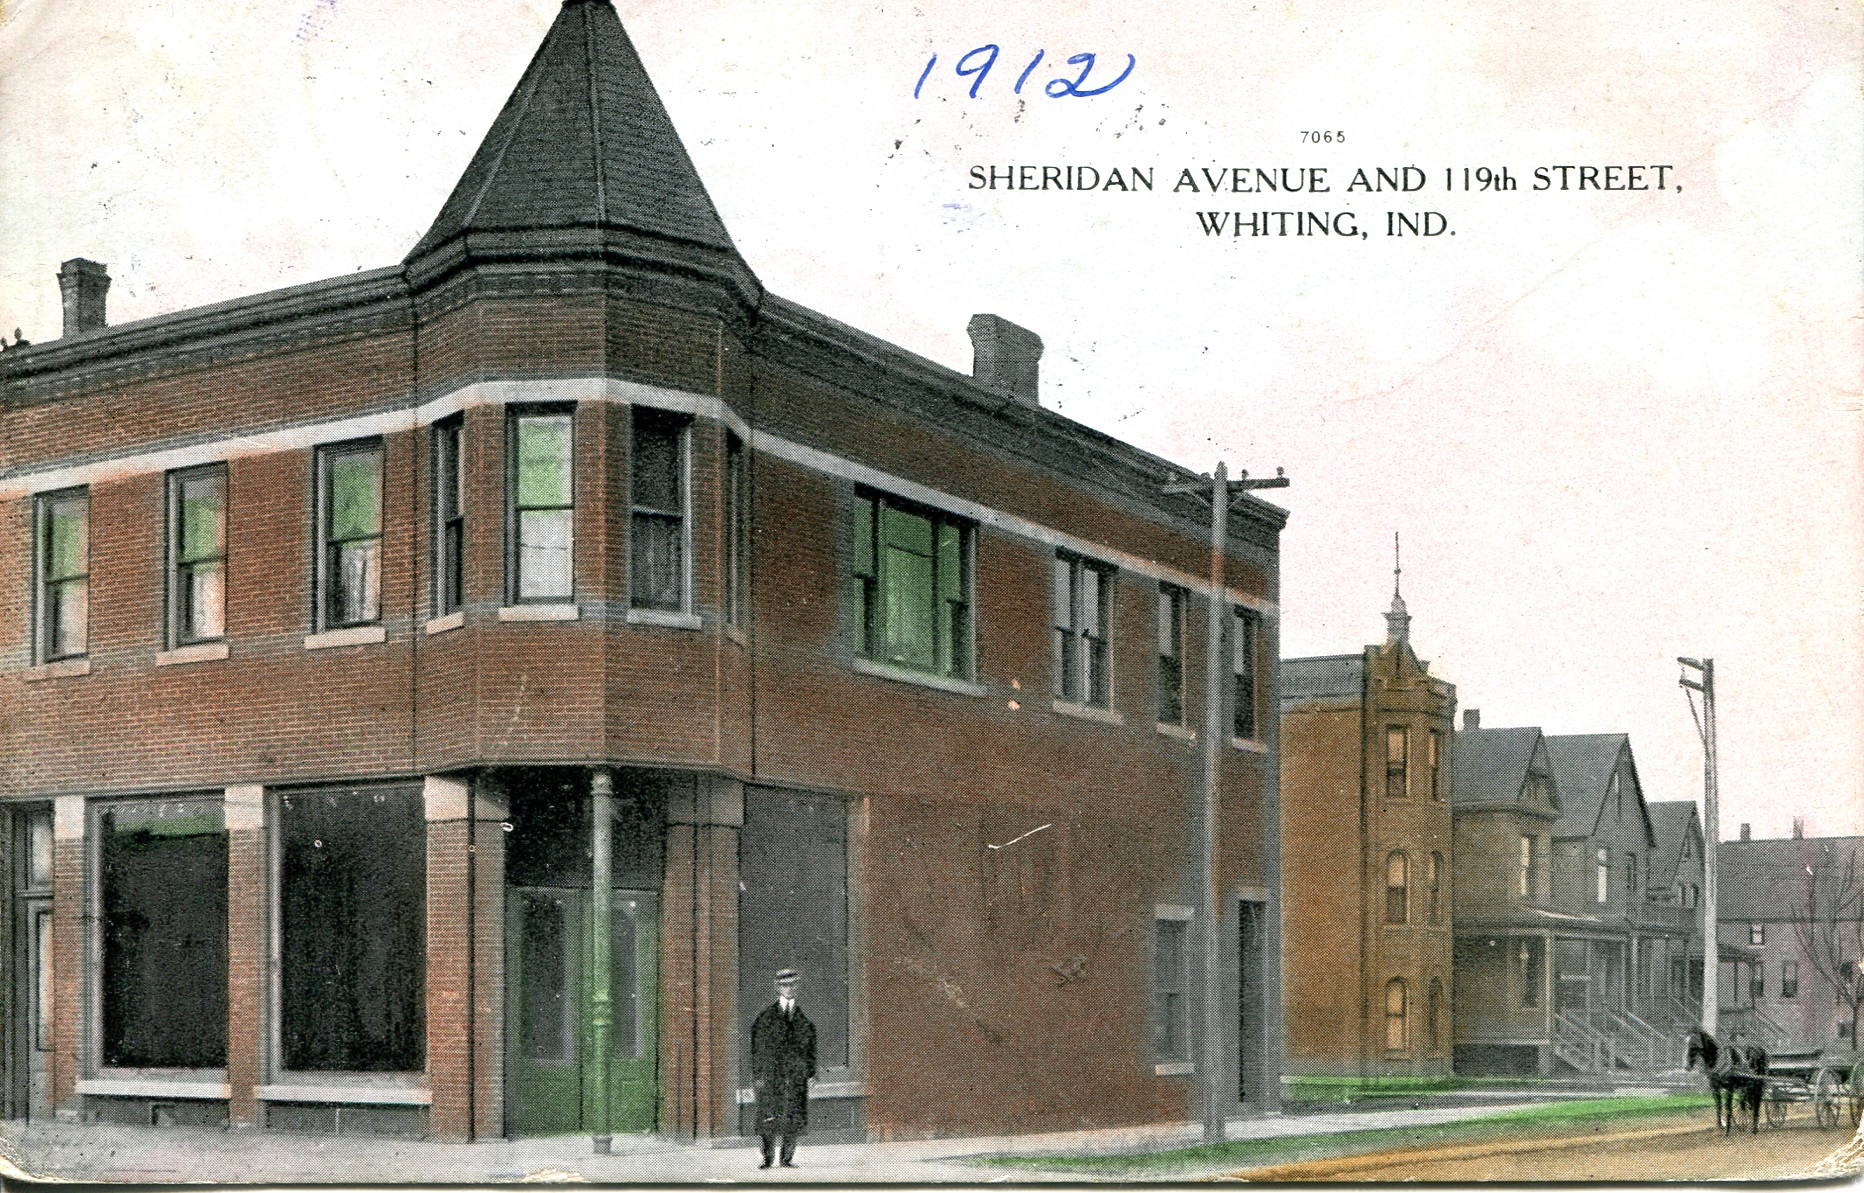 119th Street at Sheridan Avenue in 1912, currently the location of Russell Romano Salon, 1347 119th Street.